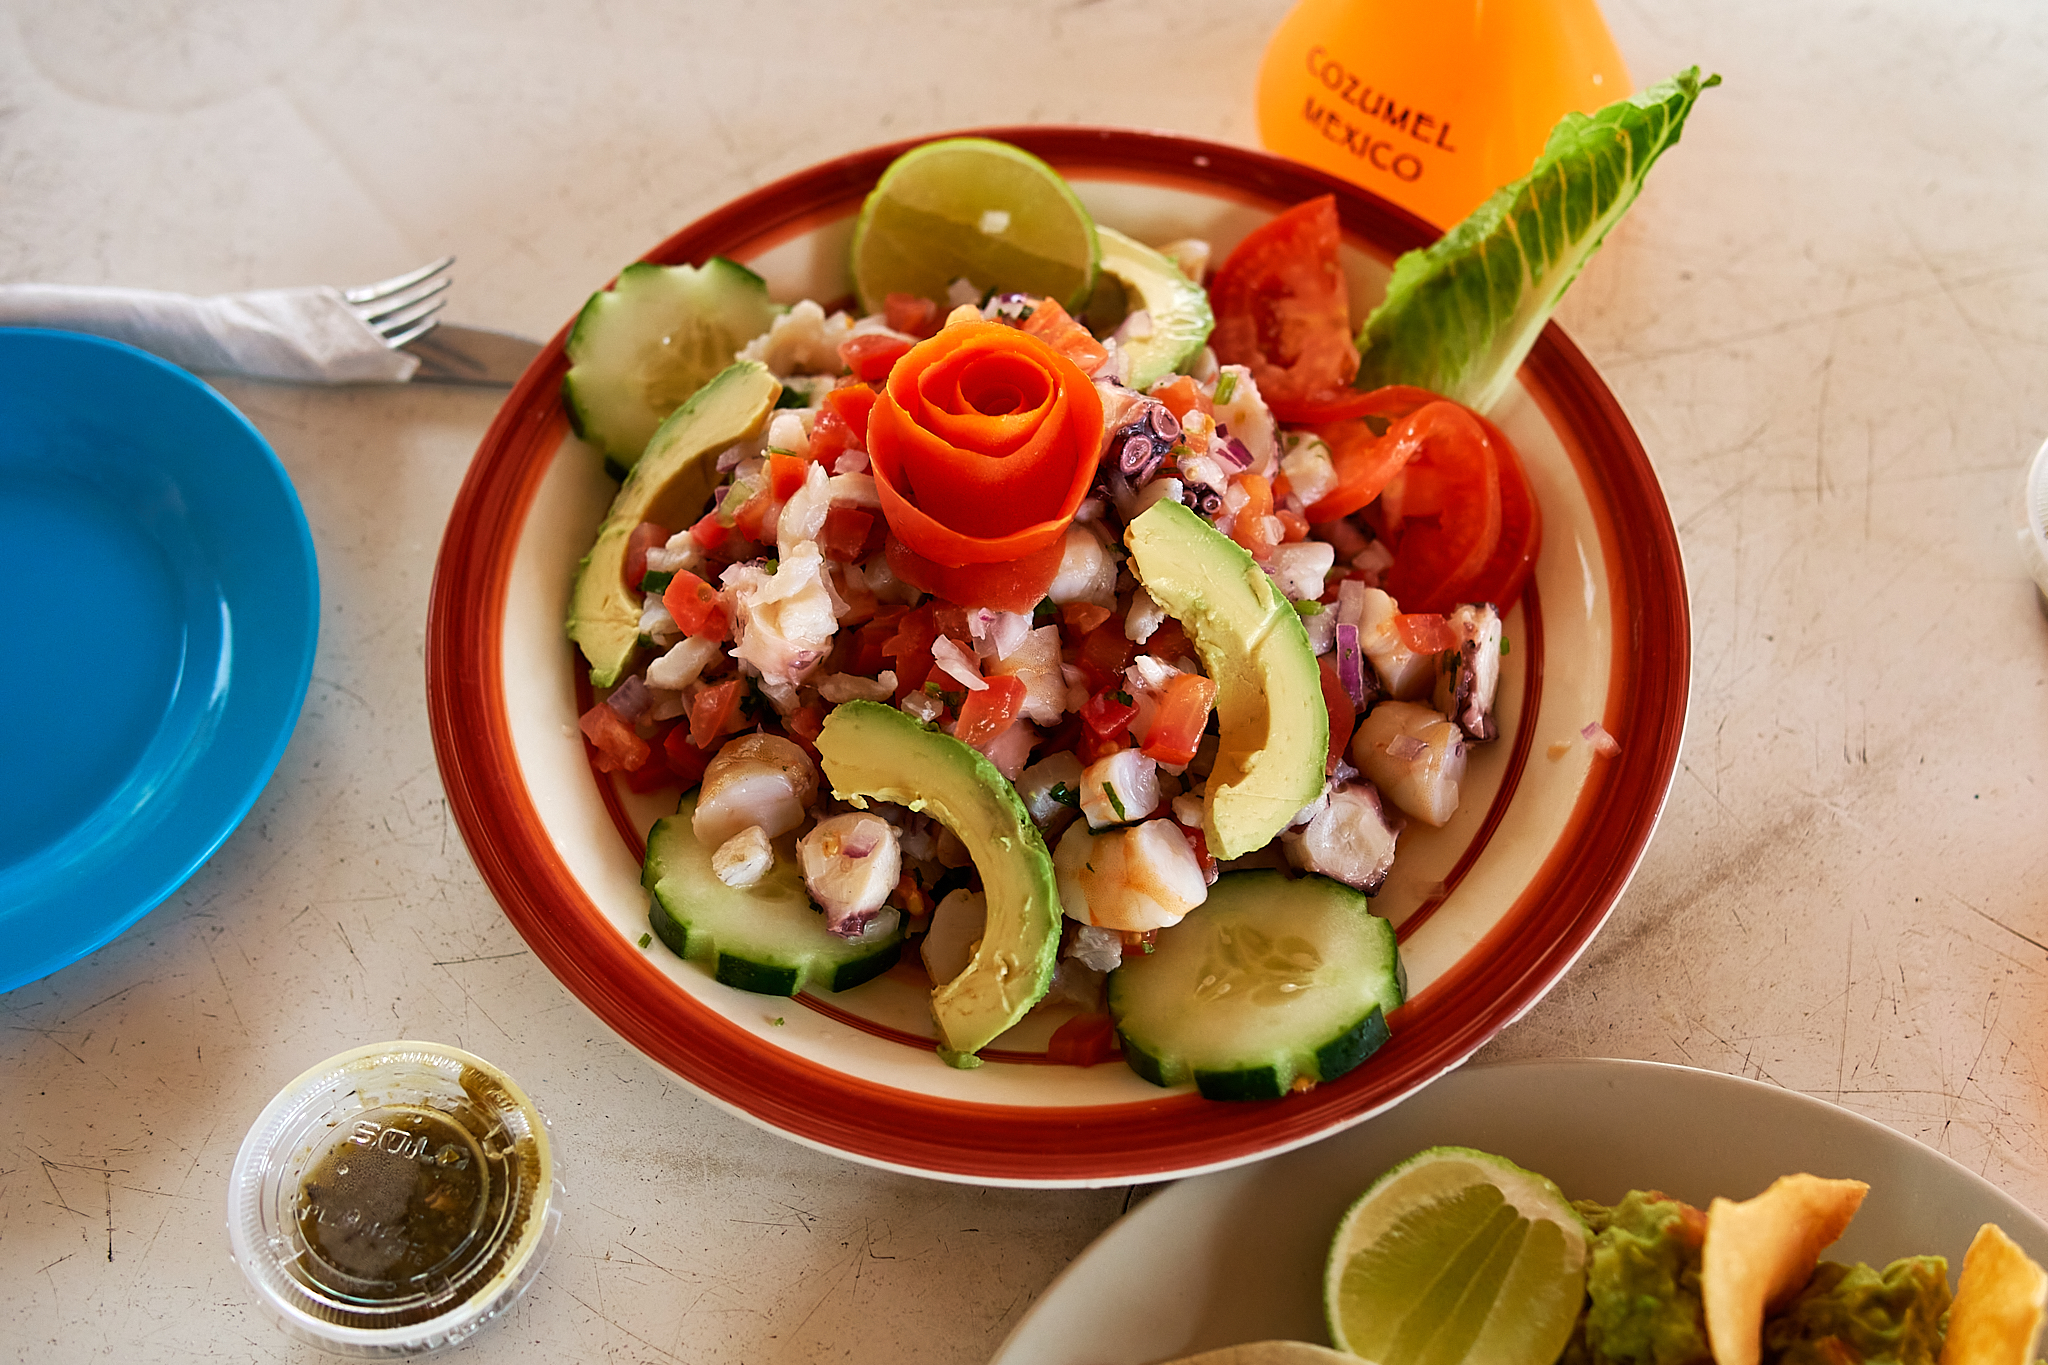 Best ceviche I've had so far...